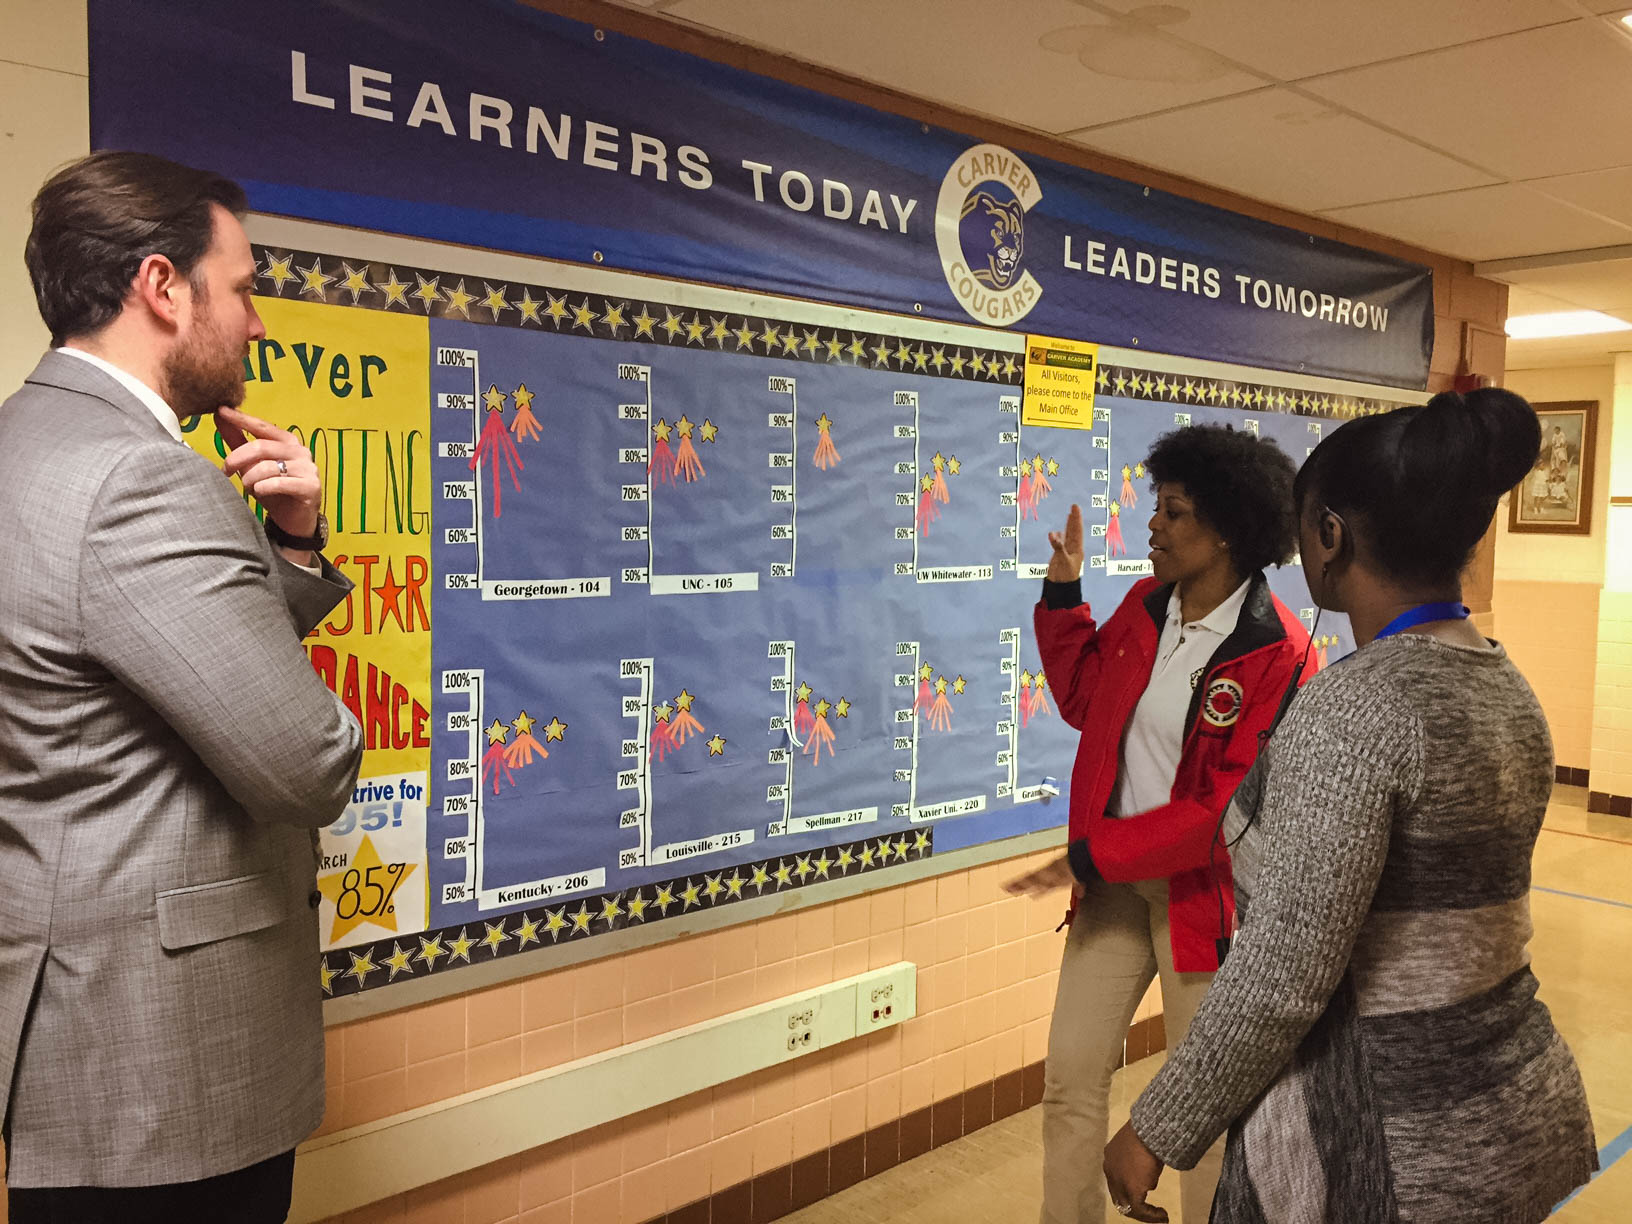 2pm School Tours: The best way to understand what City Year does is to see it in action. Potential partners are invited to do a school tour, and corps members support in leading these tours.